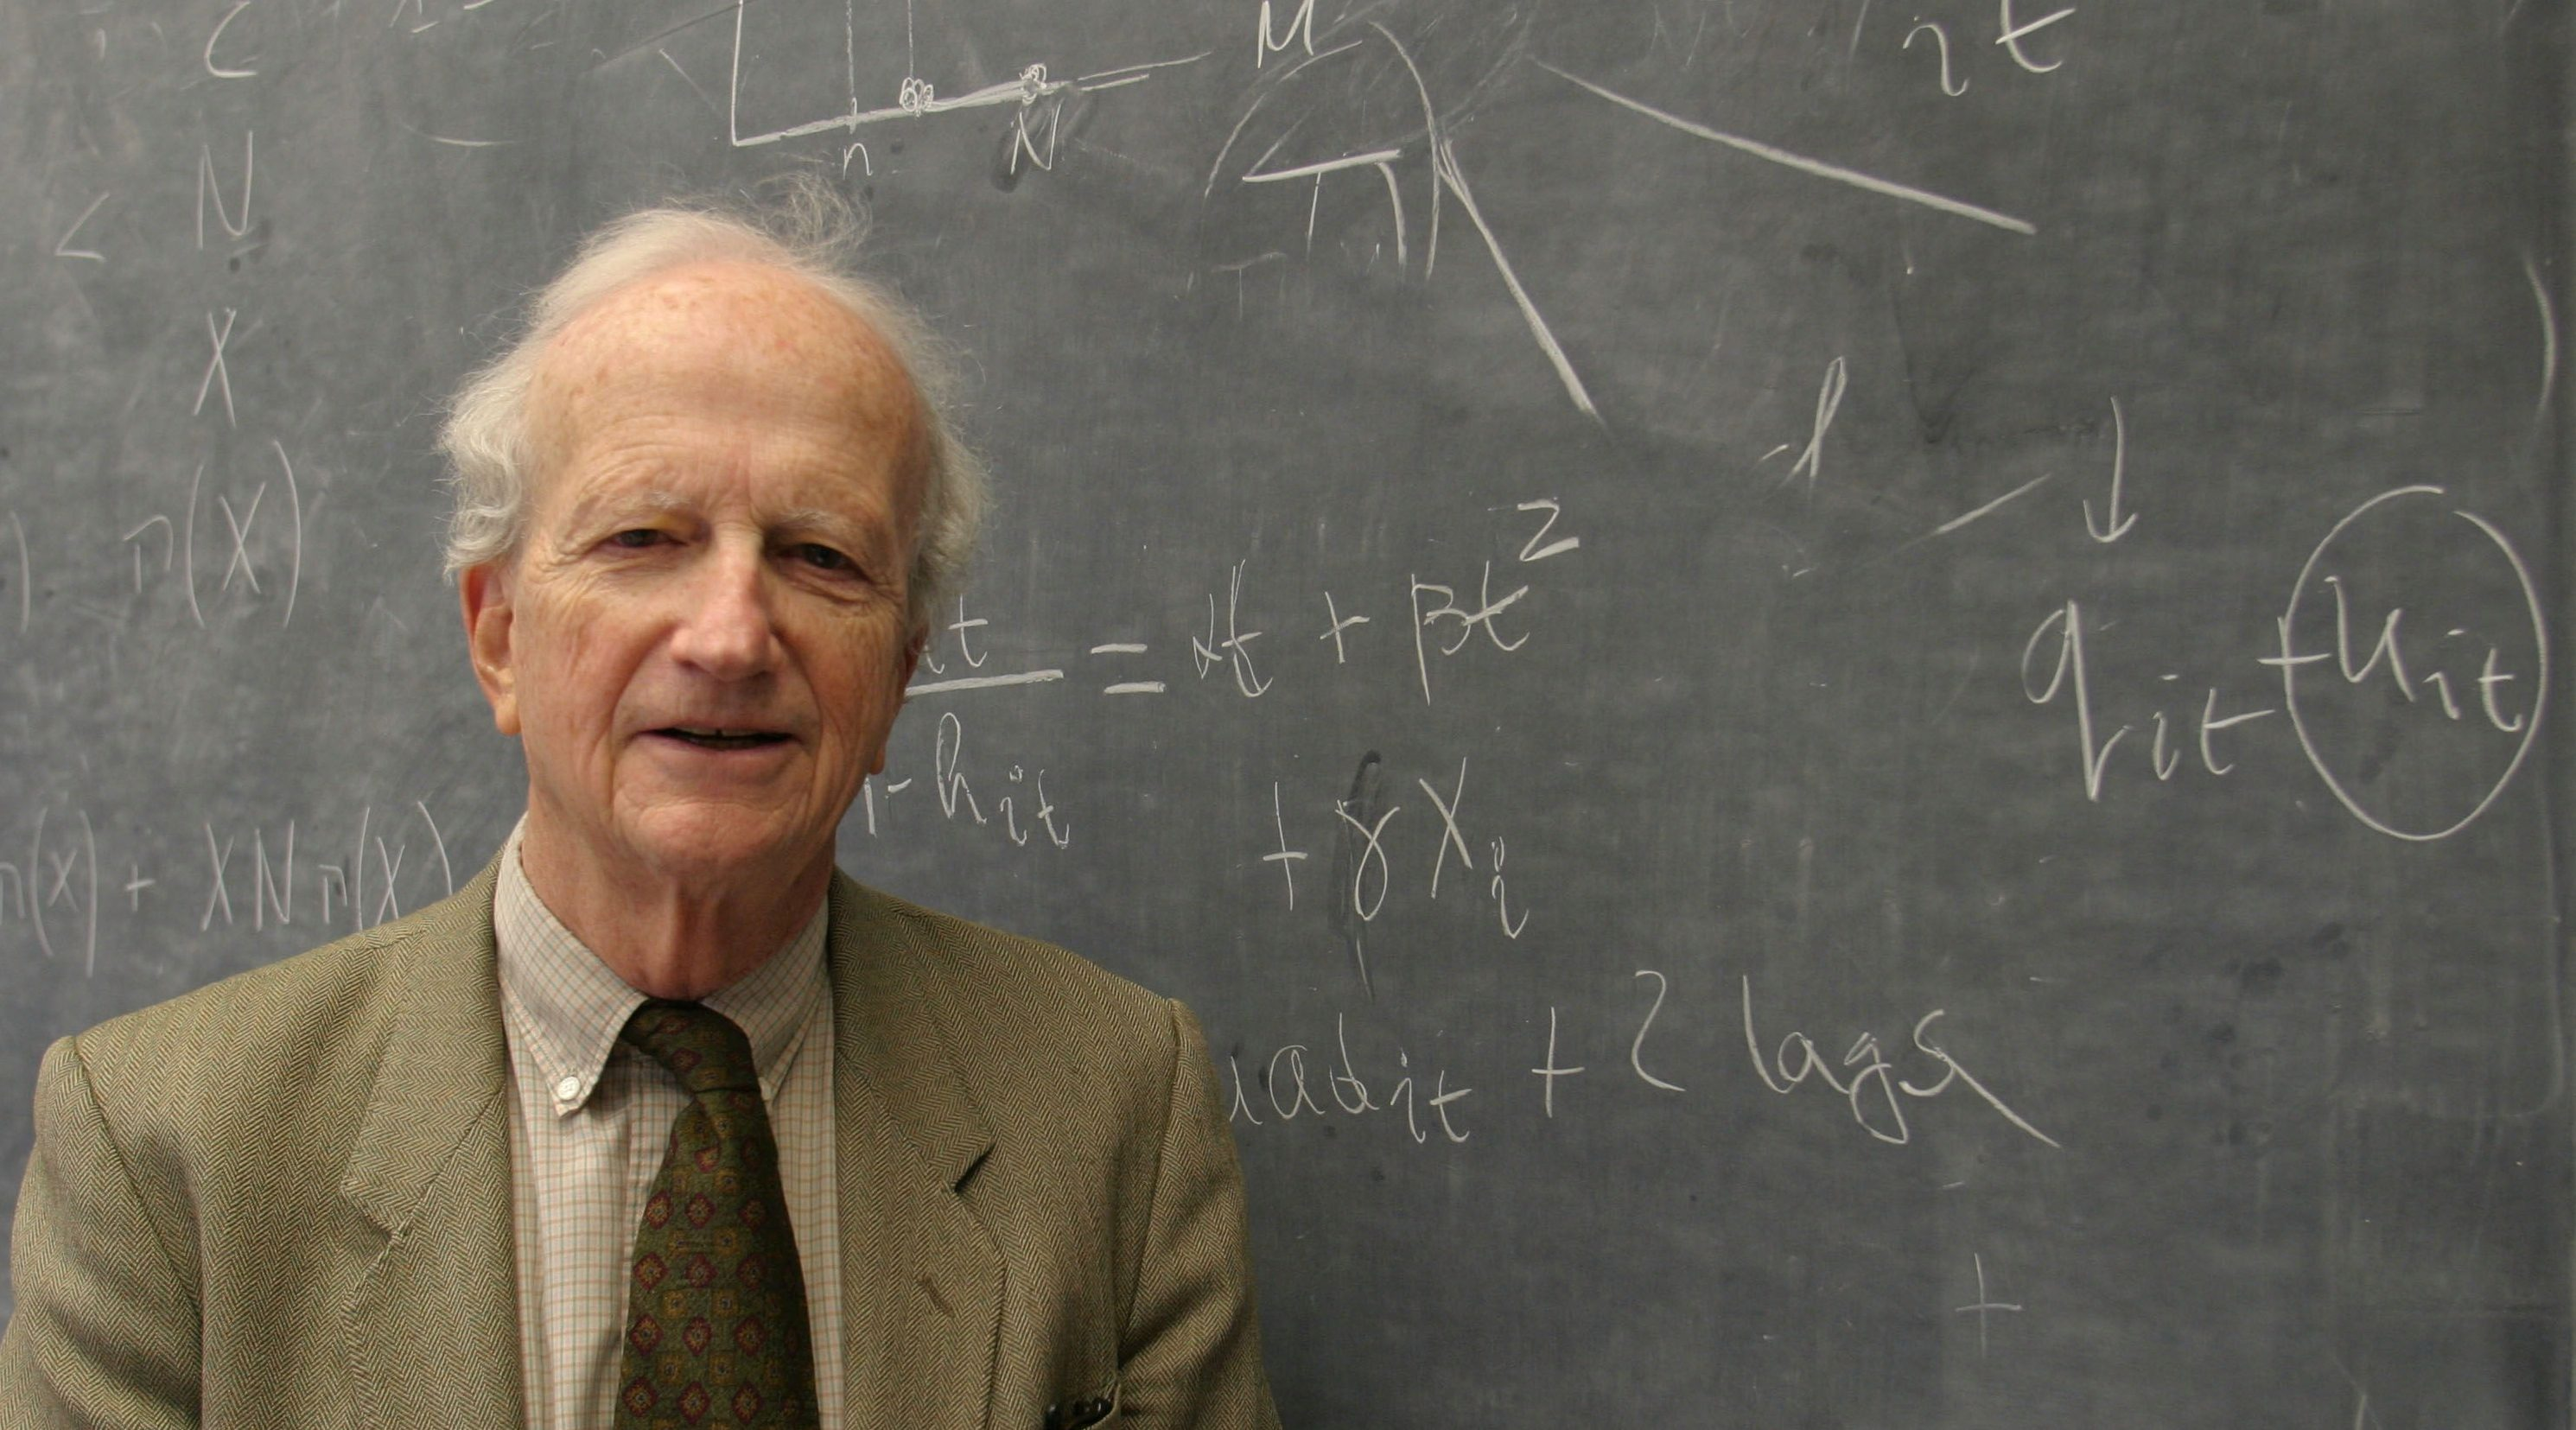 niversity of Chicago Professor Gary Becker who teaches economics and sociology poses for a portrait in his office, Tuesday, Nov. 1, 2005, in Chicago. Becker has been educating students at the U of C for over thirty years.(AP Photo/Joshua Lott)